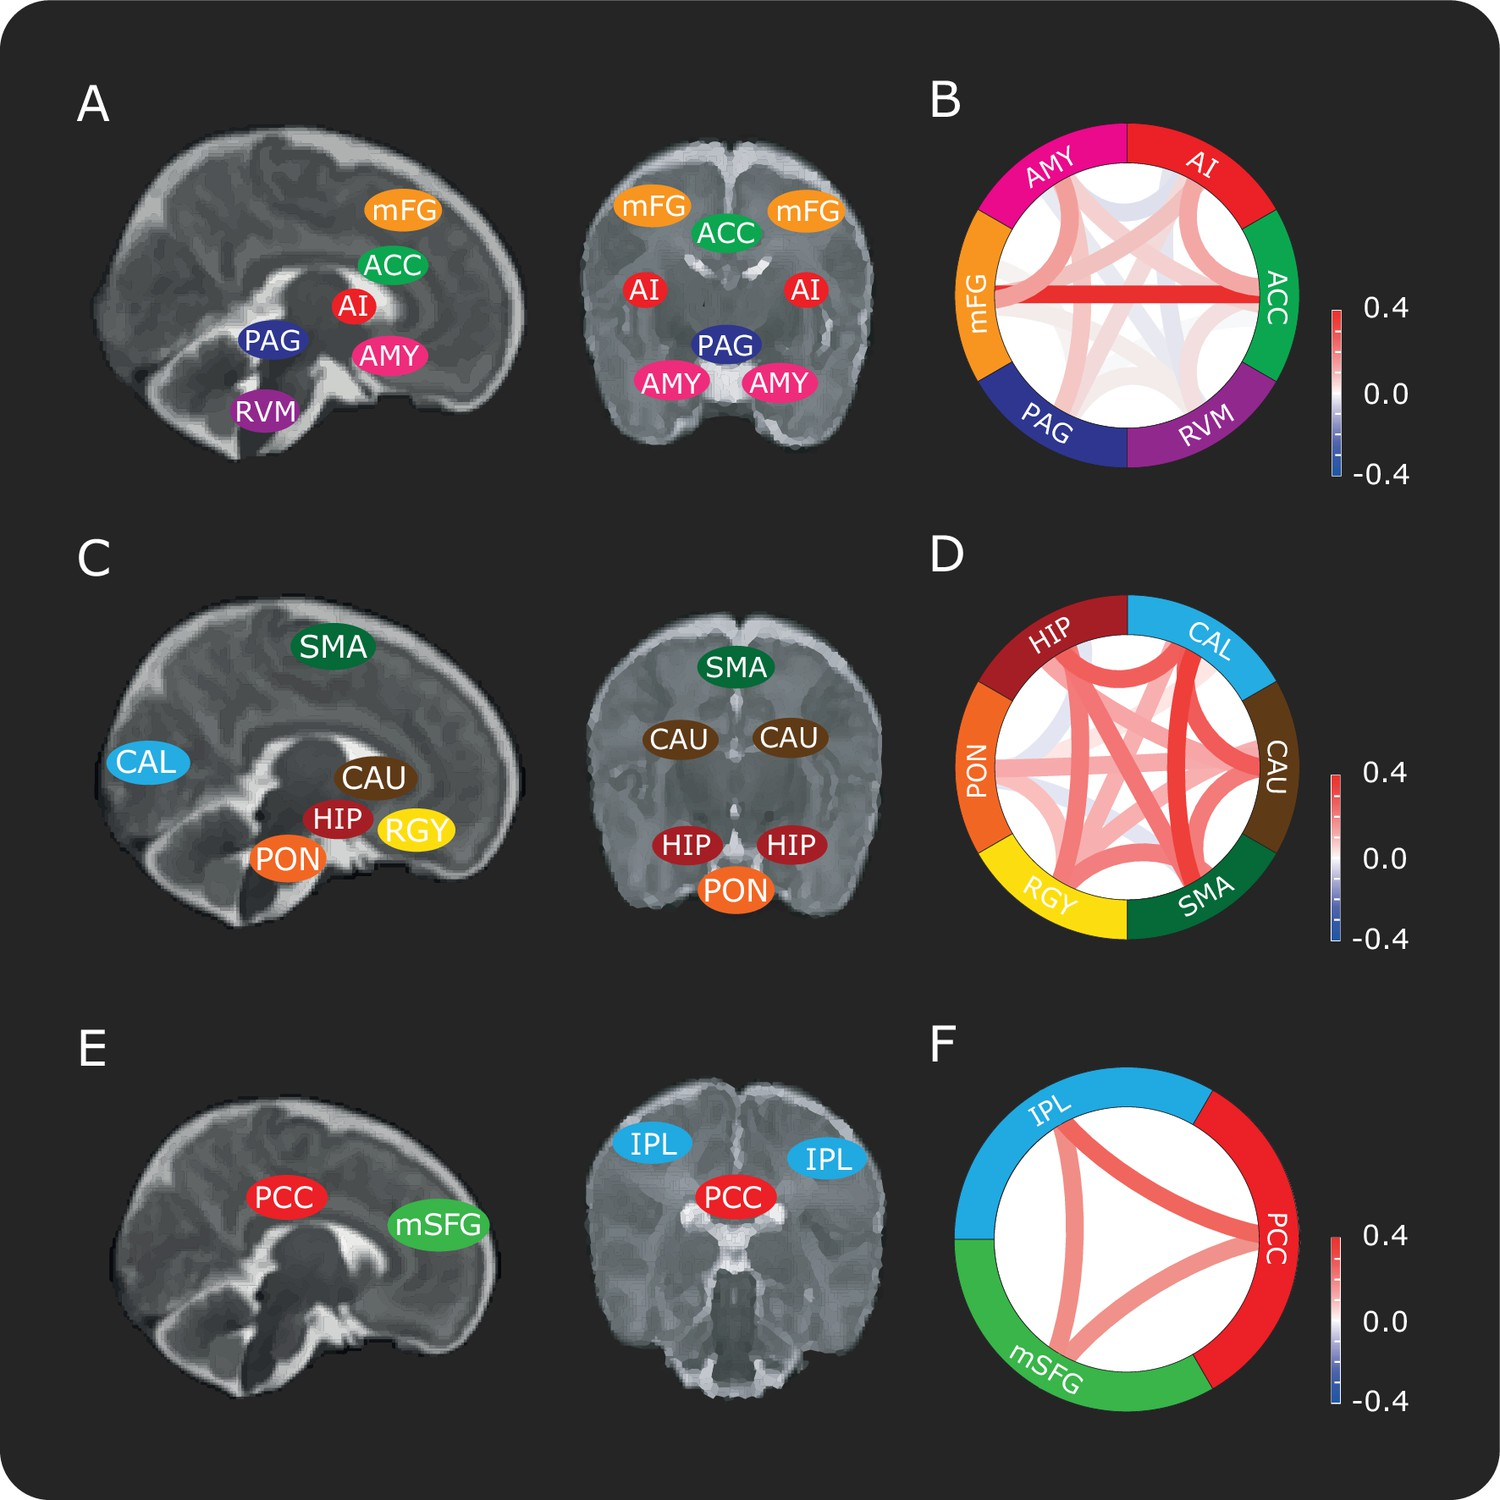 The Influence Of Descending Pain Modulatory System On Infant Electrical Symbols Circuit For Kids Dk Find Out Connectivity Between Brain Regions In Dpms And Control Networks Schematic Representation